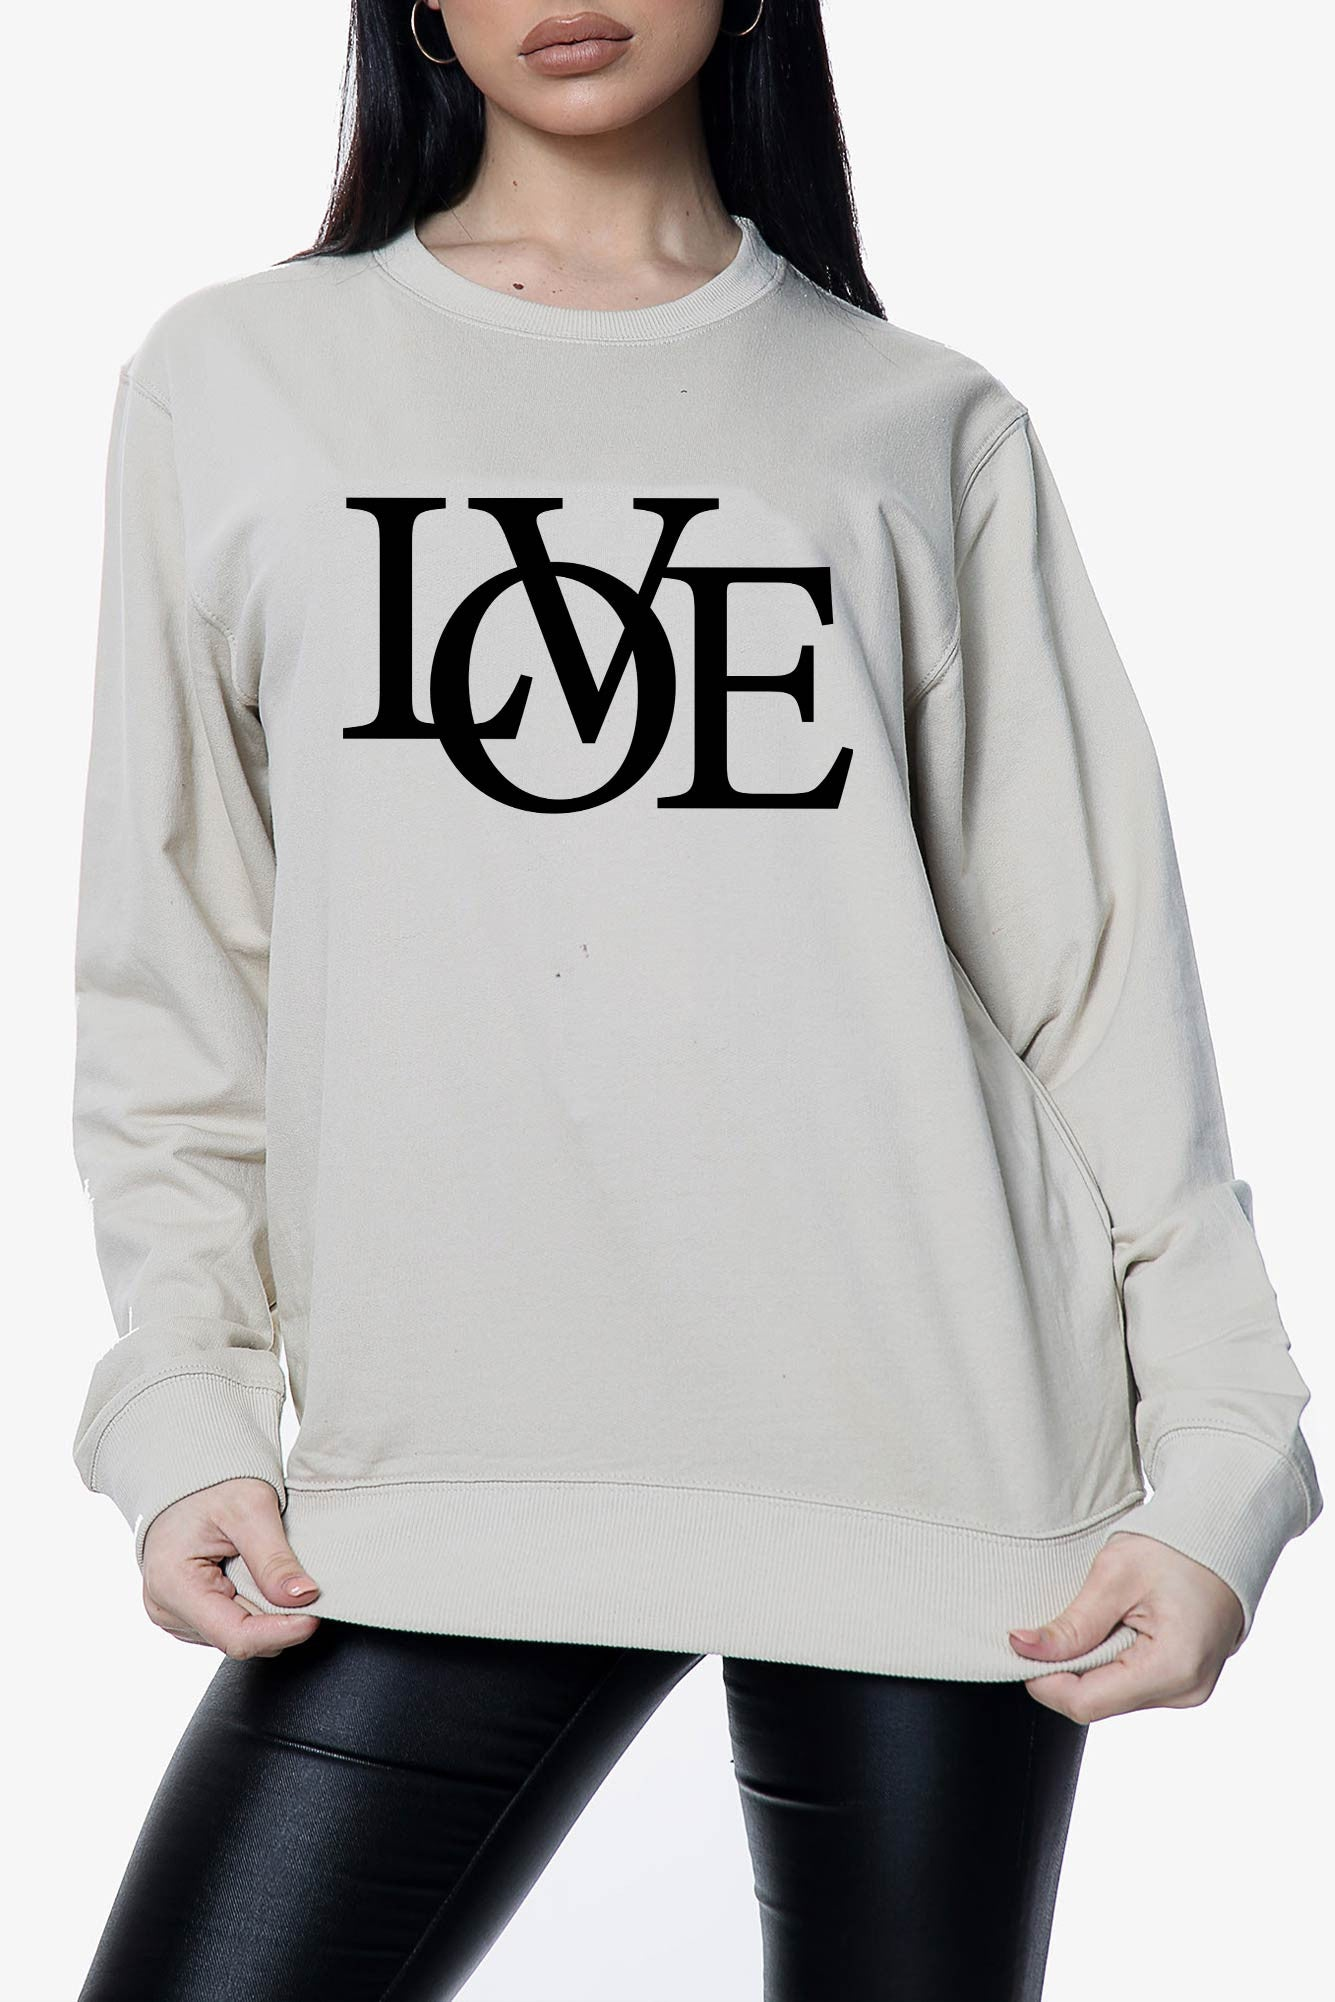 Love Slogan Oversized Sweatshirt